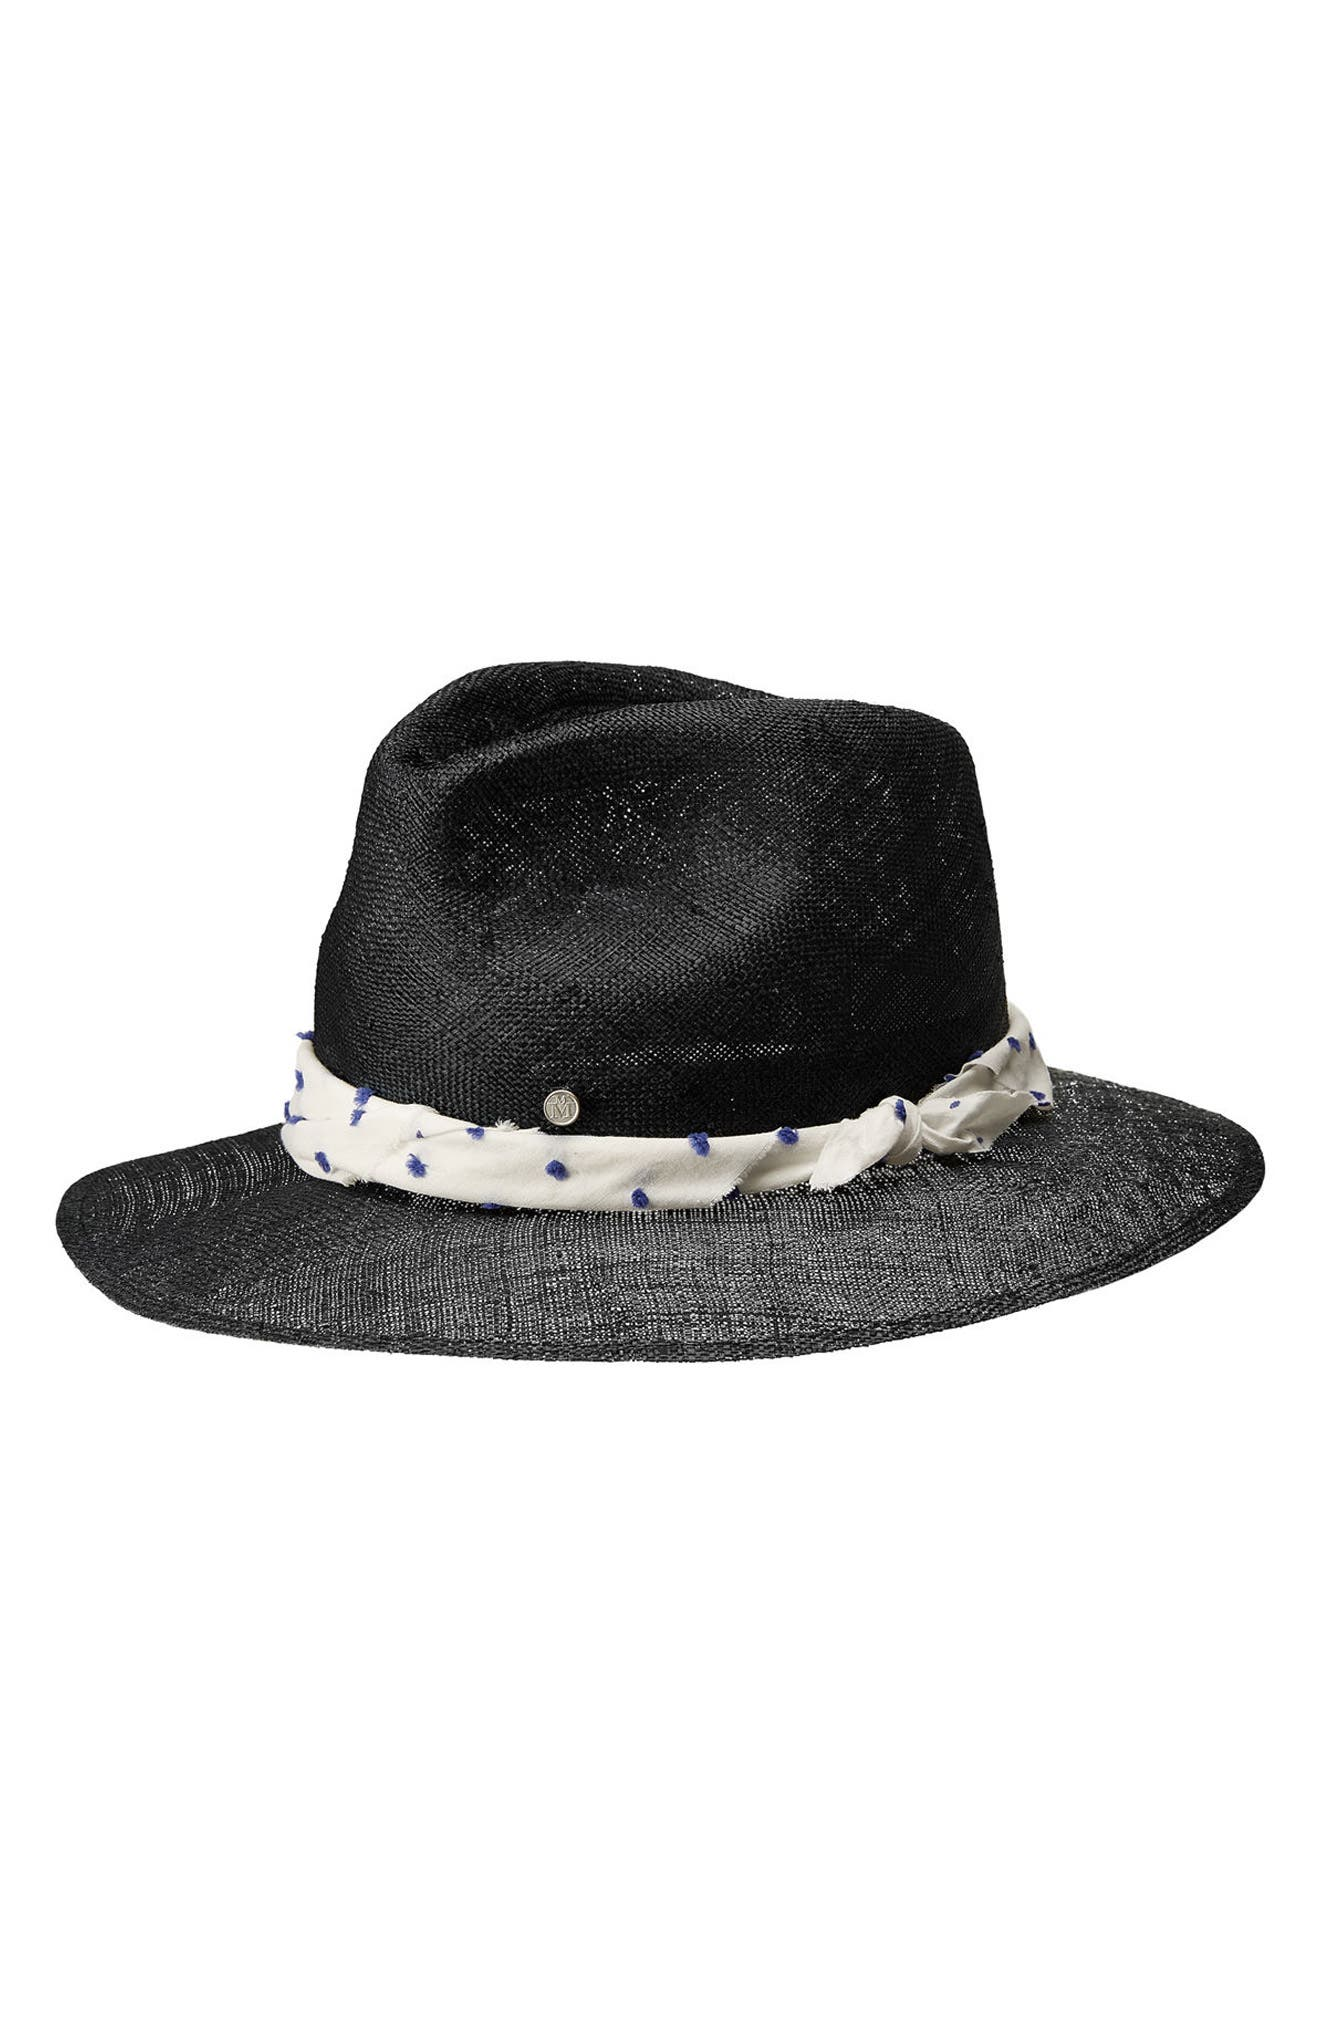 Alternate Image 1 Selected - Maison Michel Rico Straw Hat